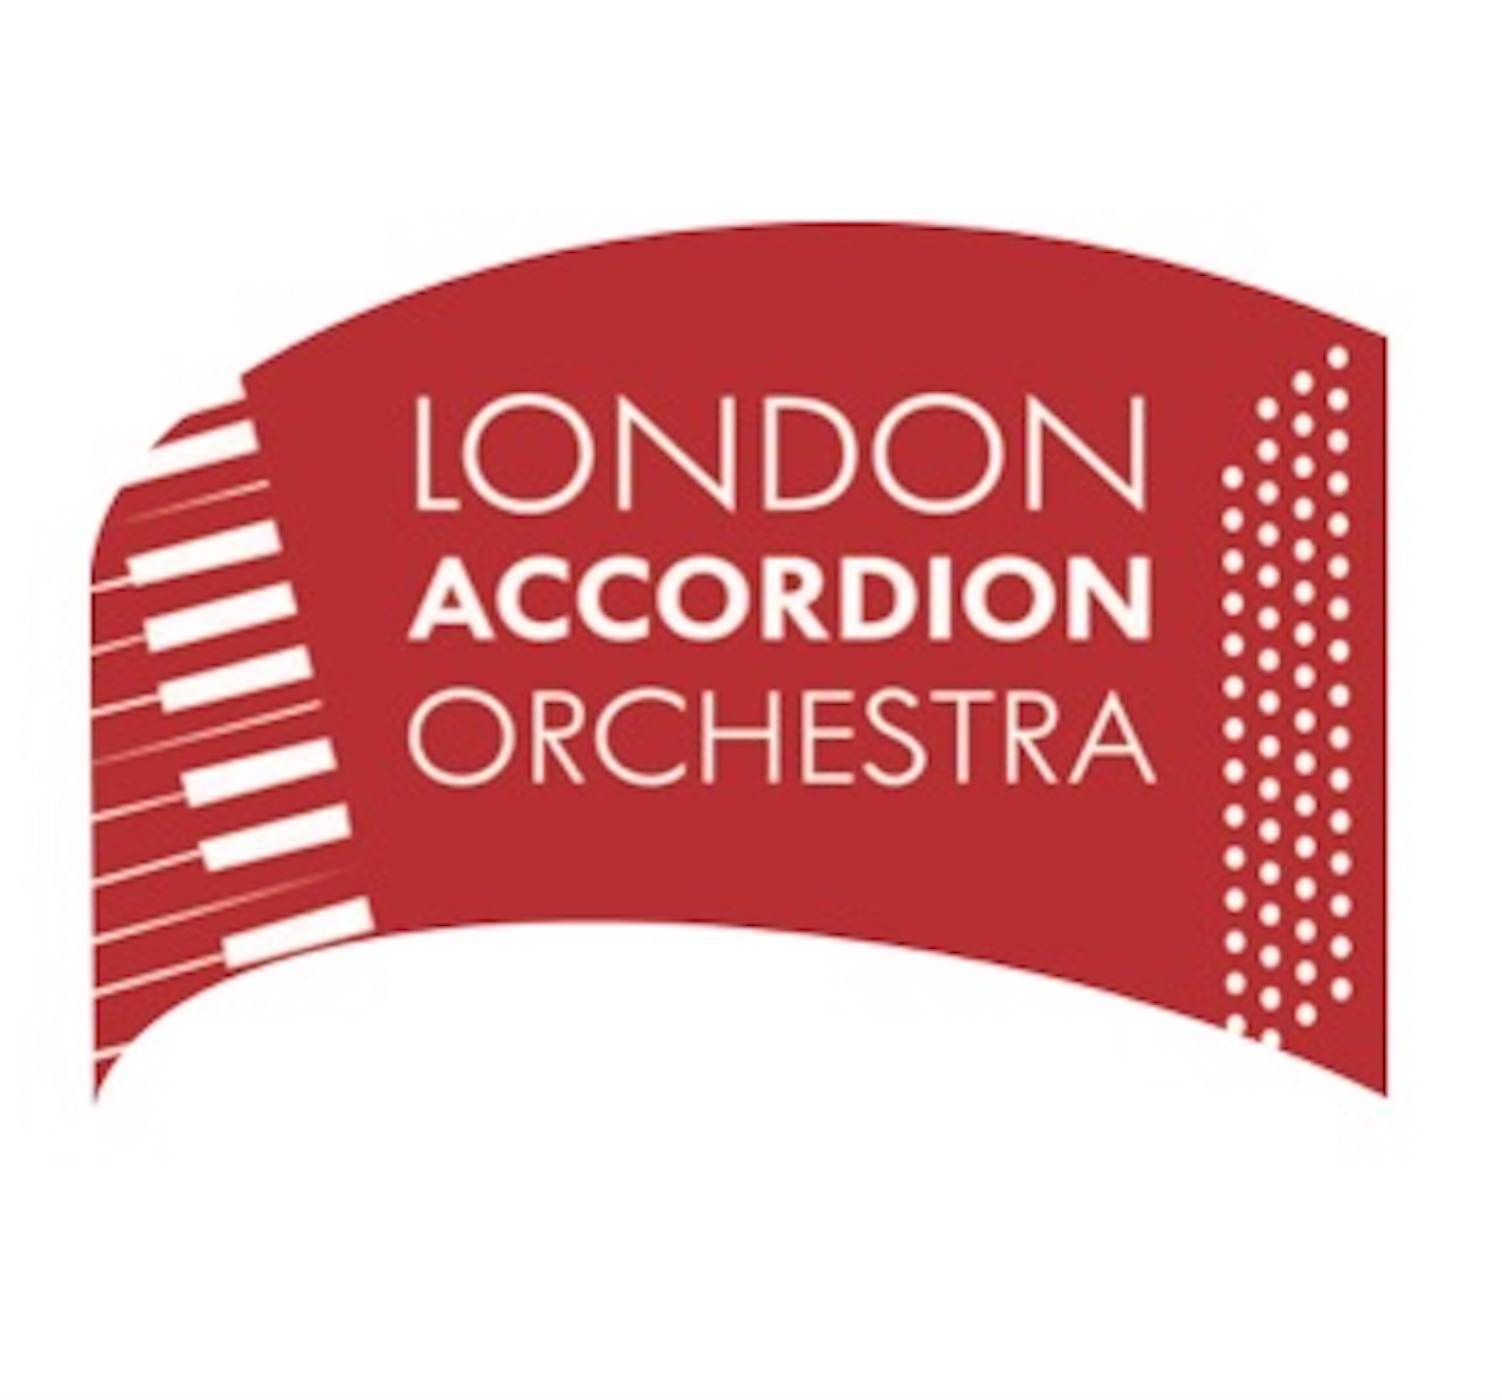 London Accordion Orchestra